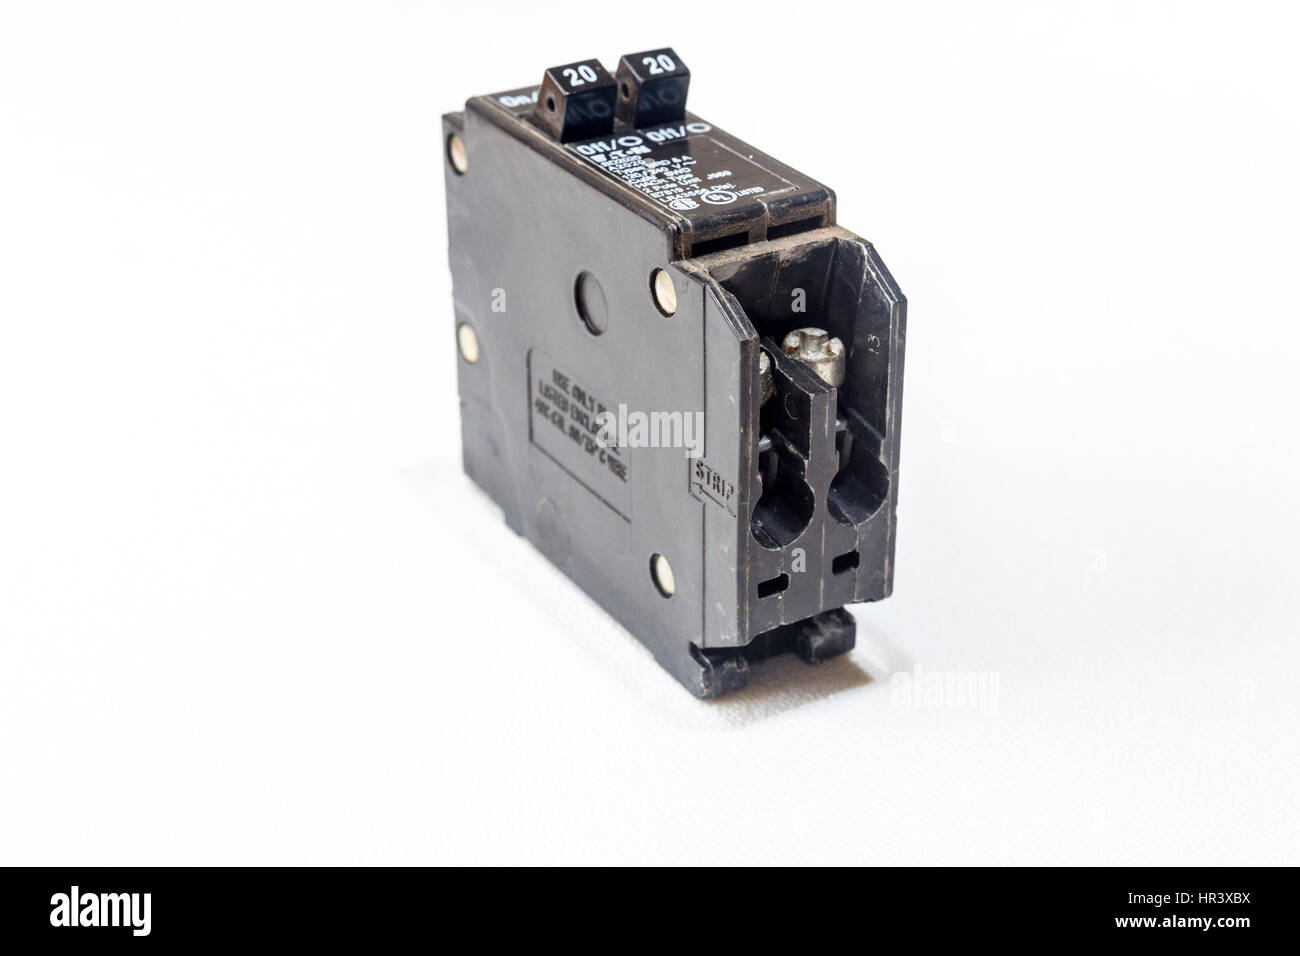 An Eaton double 20 amp Circuit Breaker USA Stock Photo: 134696238 ...